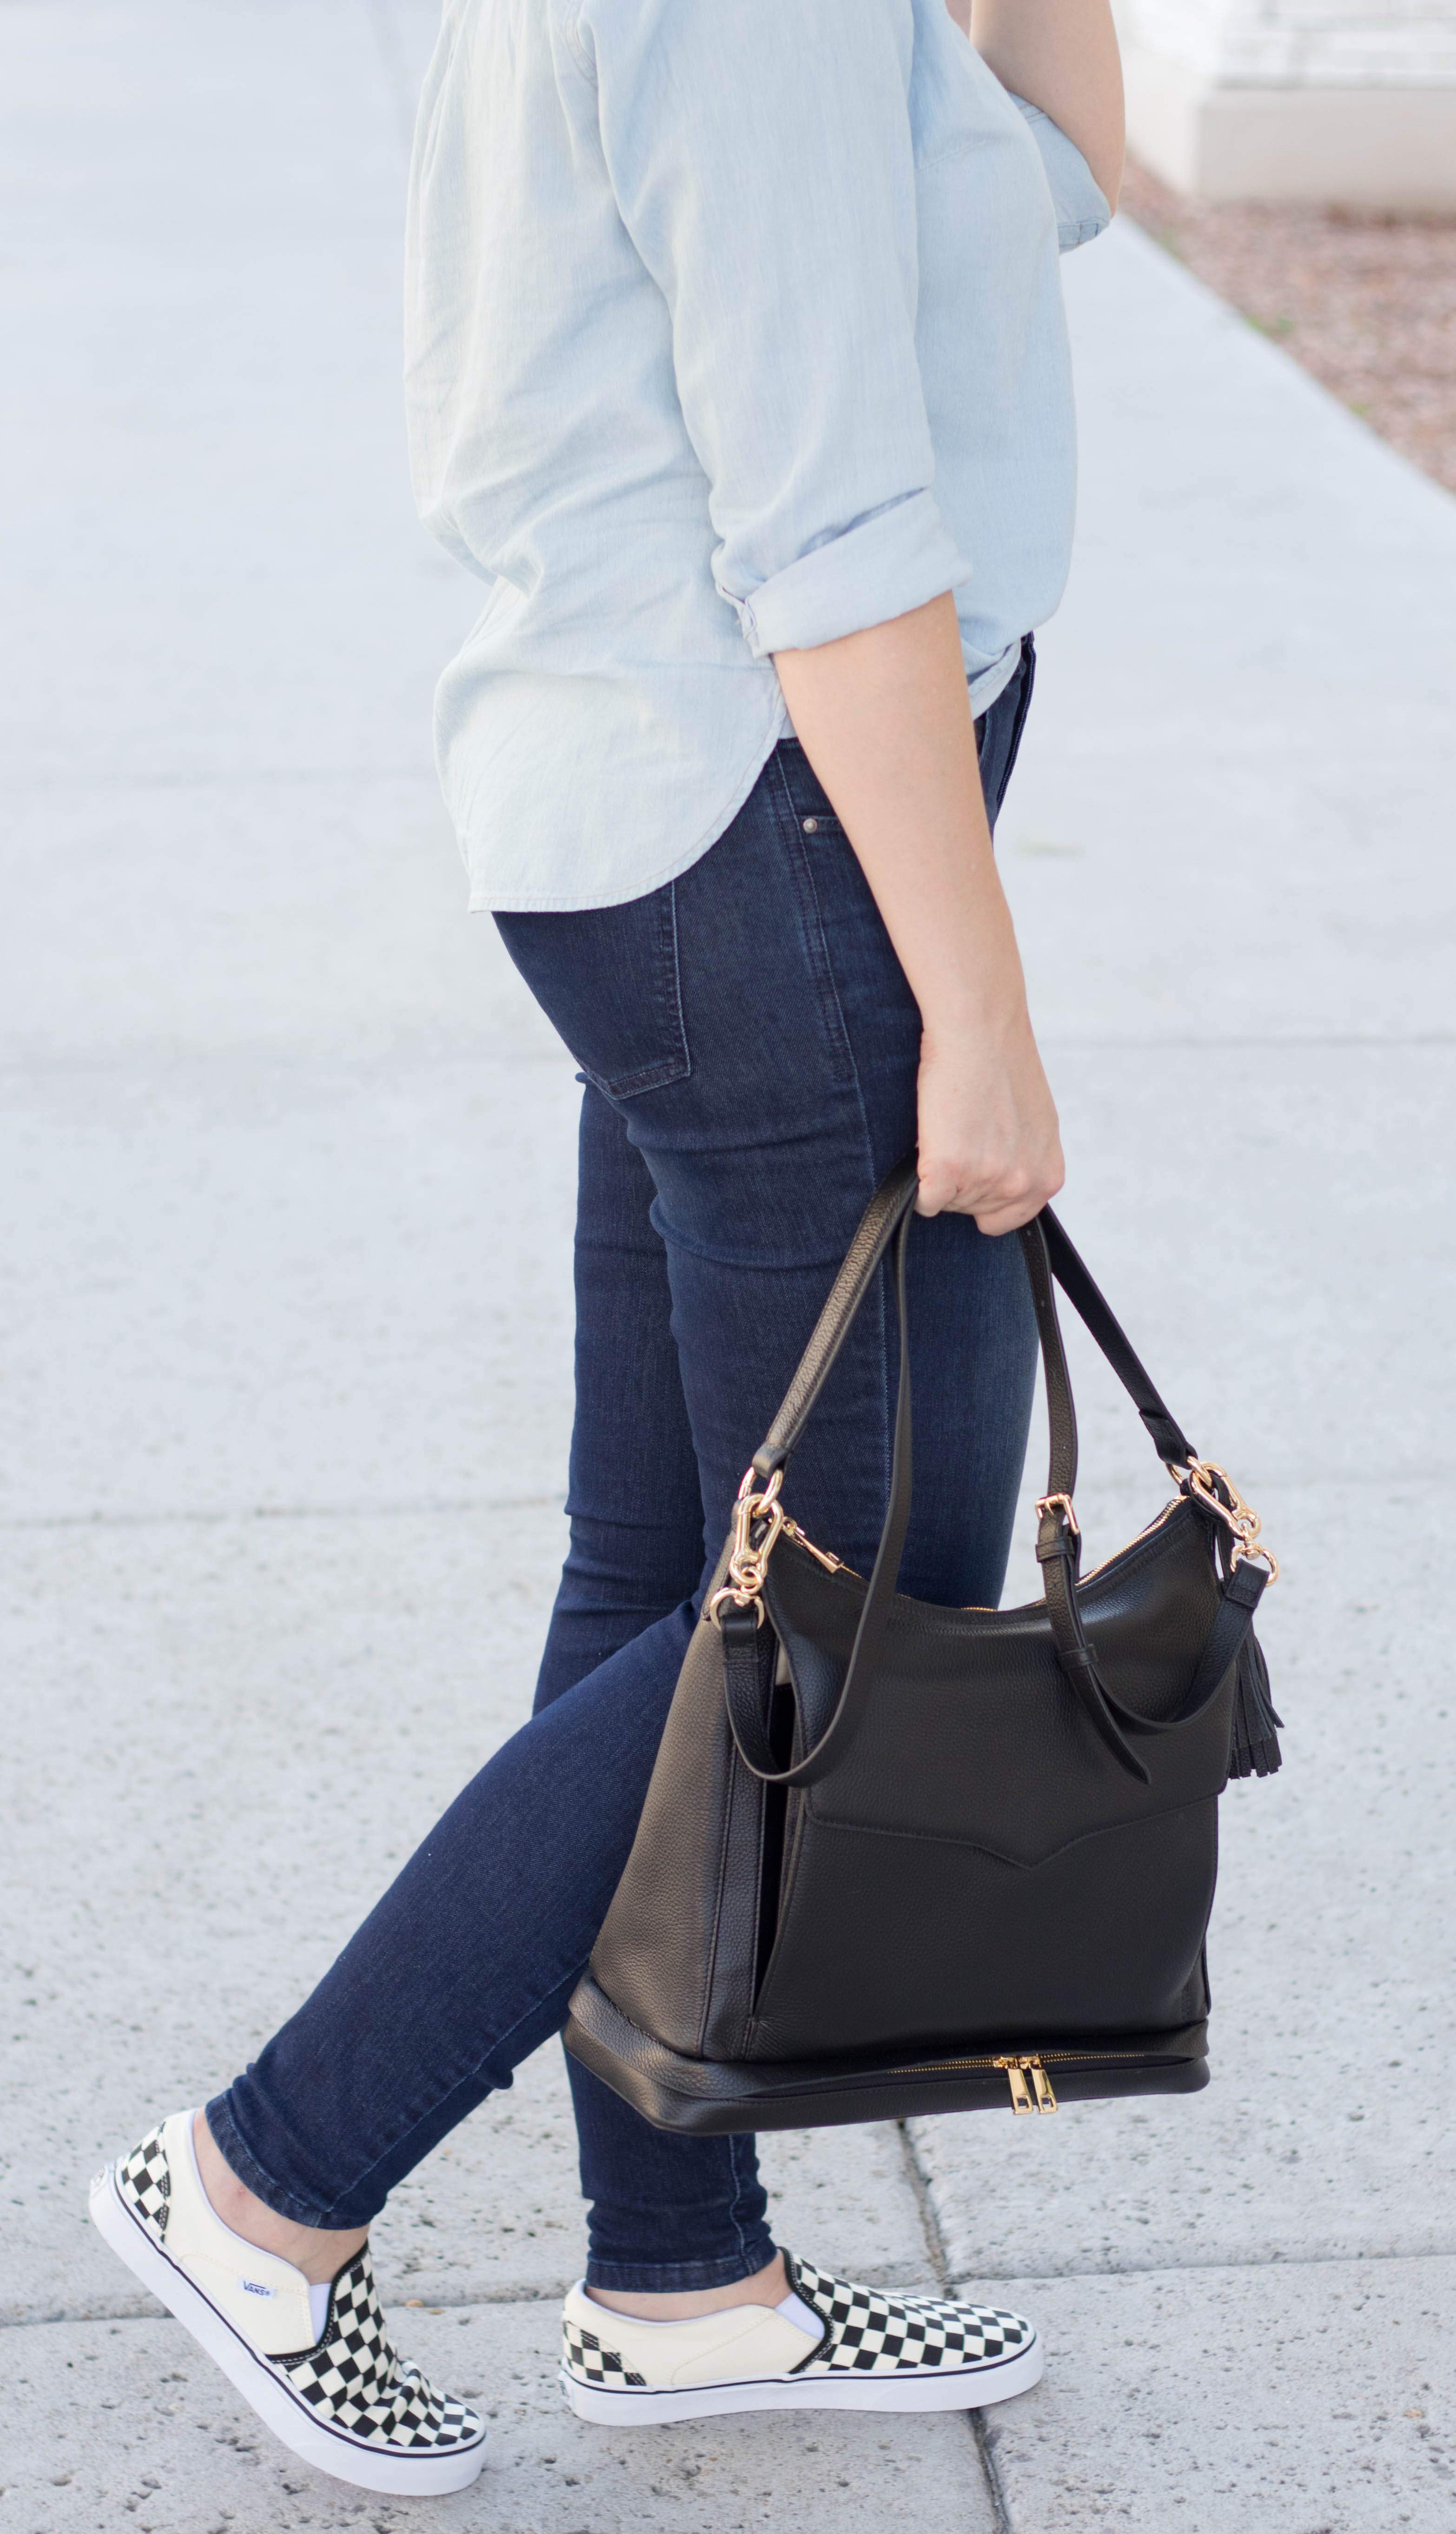 baby joey diaper bag #diaperbag #momstyle #fallstyle #denimoutfit